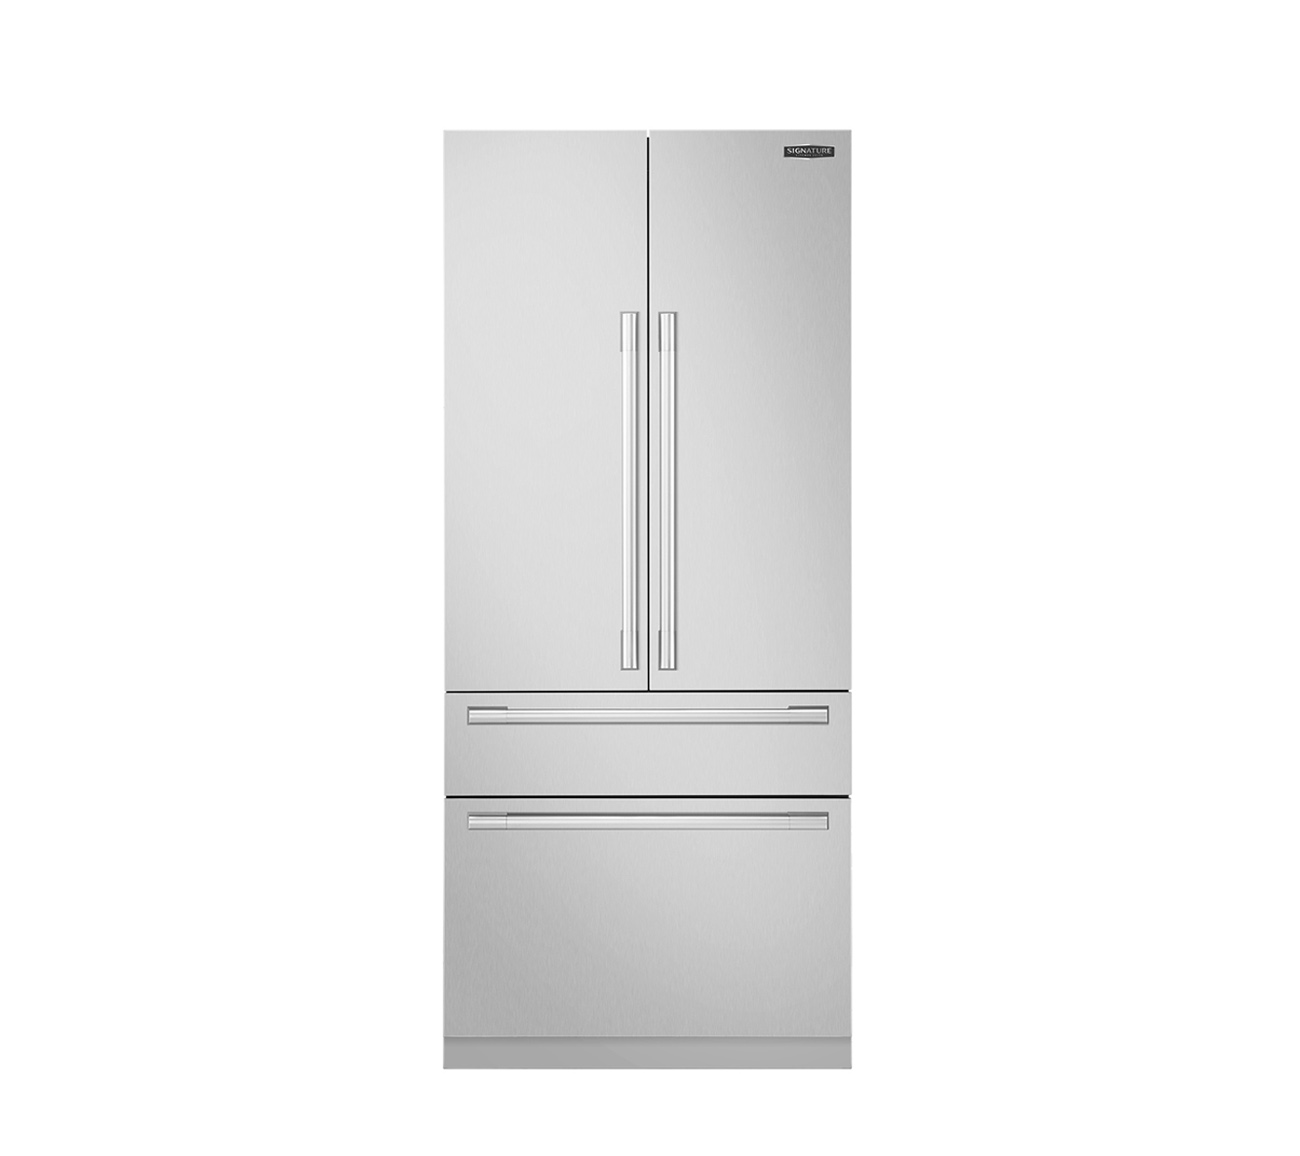 "Signature Kitchen Suite | 36"" Built-in French Door Refrigerator"